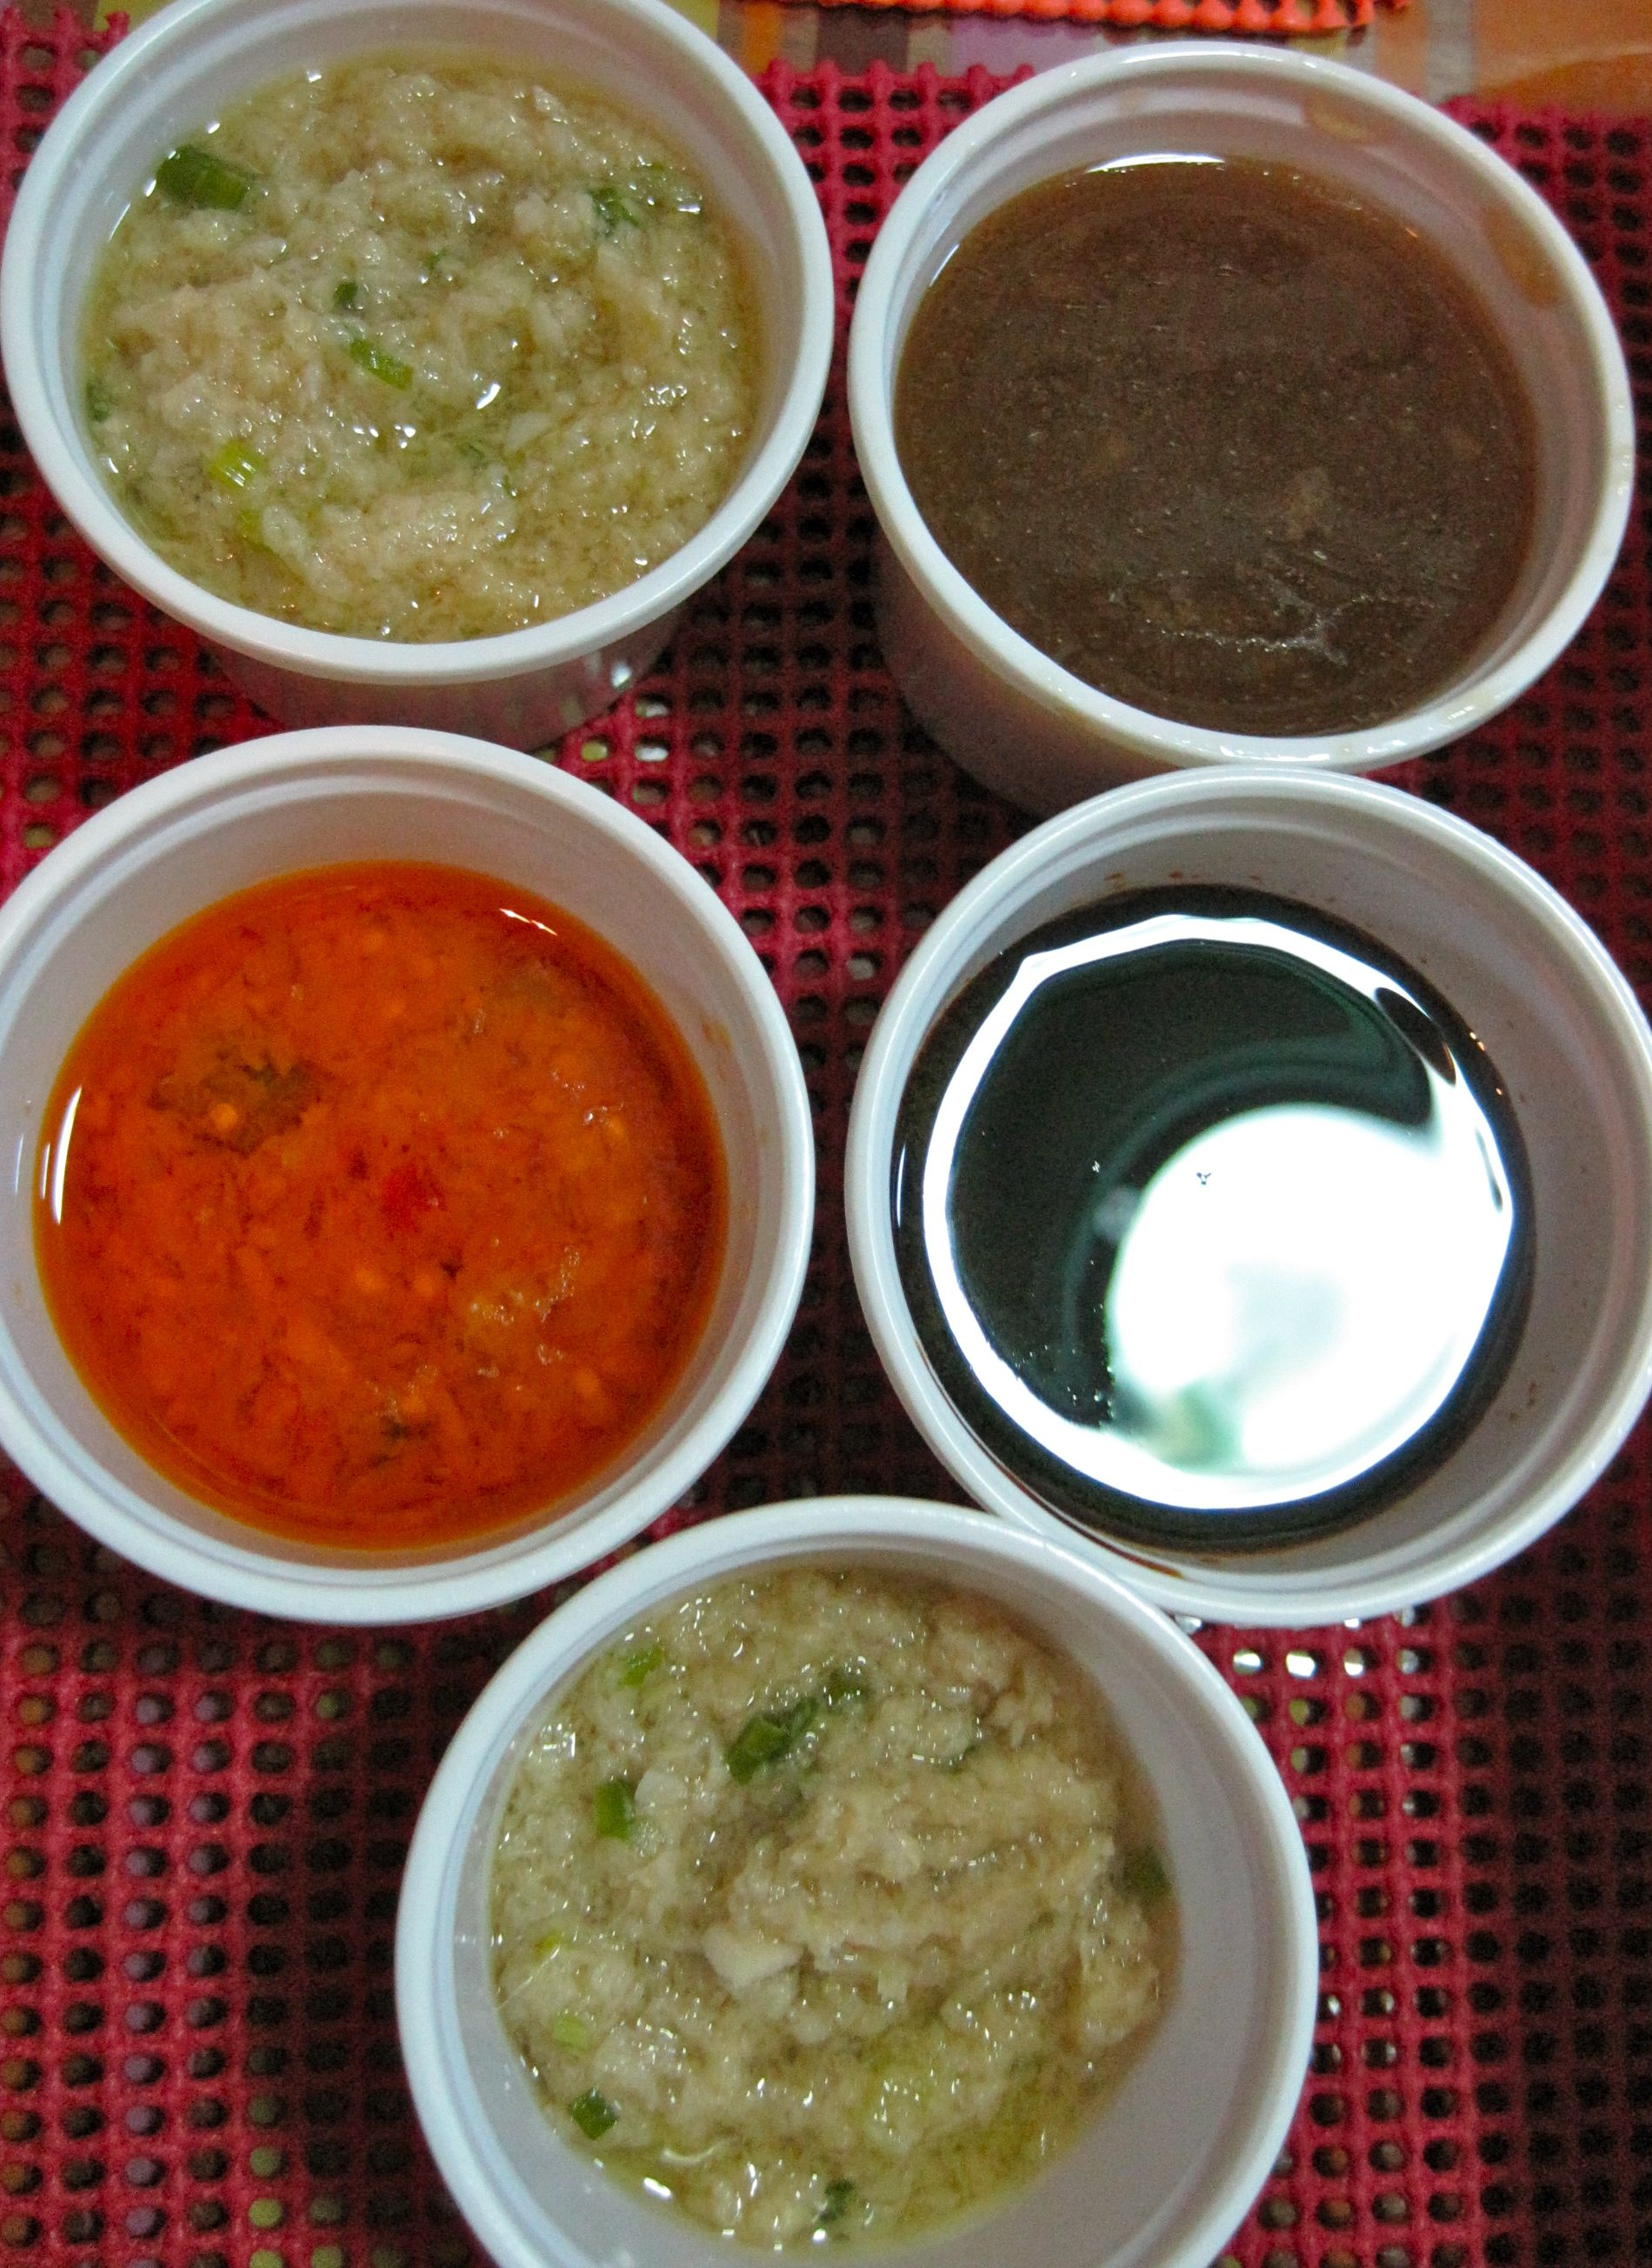 It Came With These Sauces Ginger Chili Sweet Soy And Topping Sauces Hainanese Rice